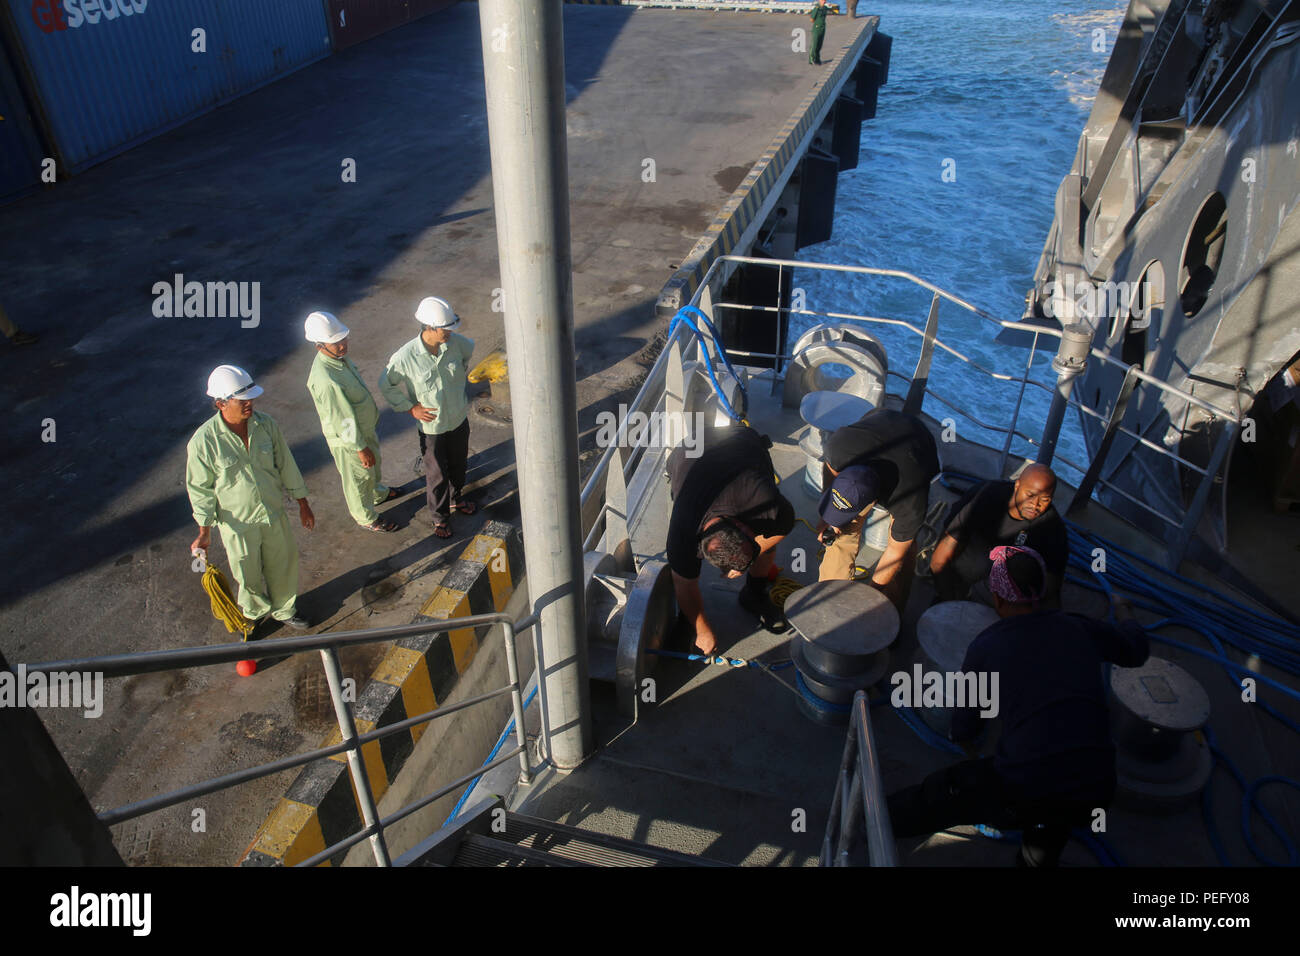 150817-M-GO800-100 DA NANG, Vietnam (August 17, 2015) – Civilian Mariners work alongside Vietnamese dock workers to secure the Military Sealift Command joint high speed vessel USNS Millinocket (JHSV 3) to the pier Aug. 17. Task Force Forager, embarked aboard Millinocket is serving as the secondary platform for Pacific Partnership, led by an expeditionary command element from the Navy's 30th Naval Construction Regiment (30 NCR) from Port Hueneme, California. Now in its 10th iteration, Pacific Partnership is the largest annual multilateral humanitarian assistance and disaster relief preparedness - Stock Image